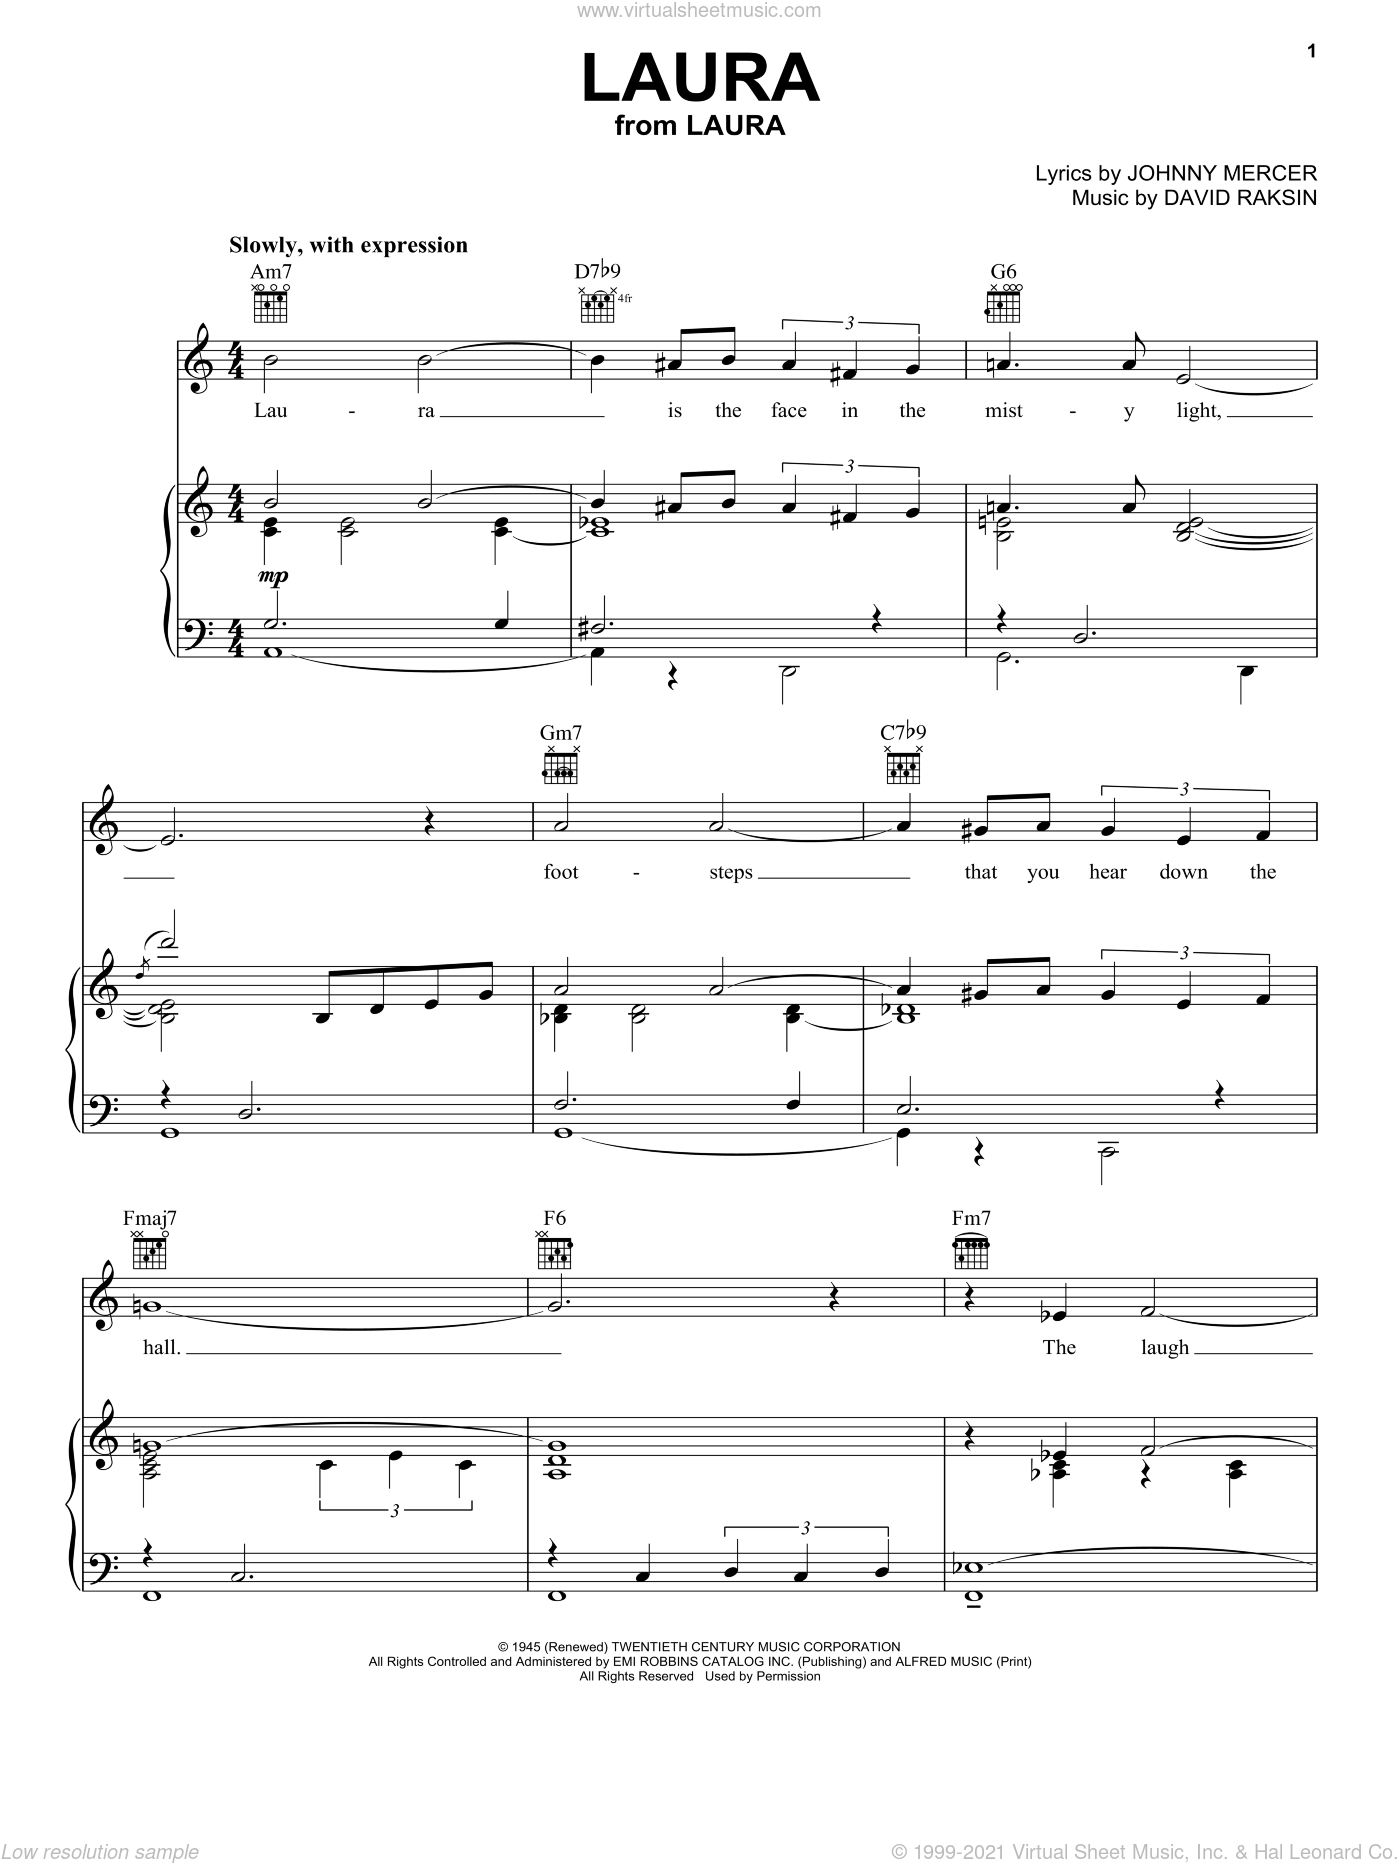 Laura sheet music for voice, piano or guitar by Frank Sinatra, Erroll Garner, Nat King Cole, David Raksin and Johnny Mercer, intermediate skill level